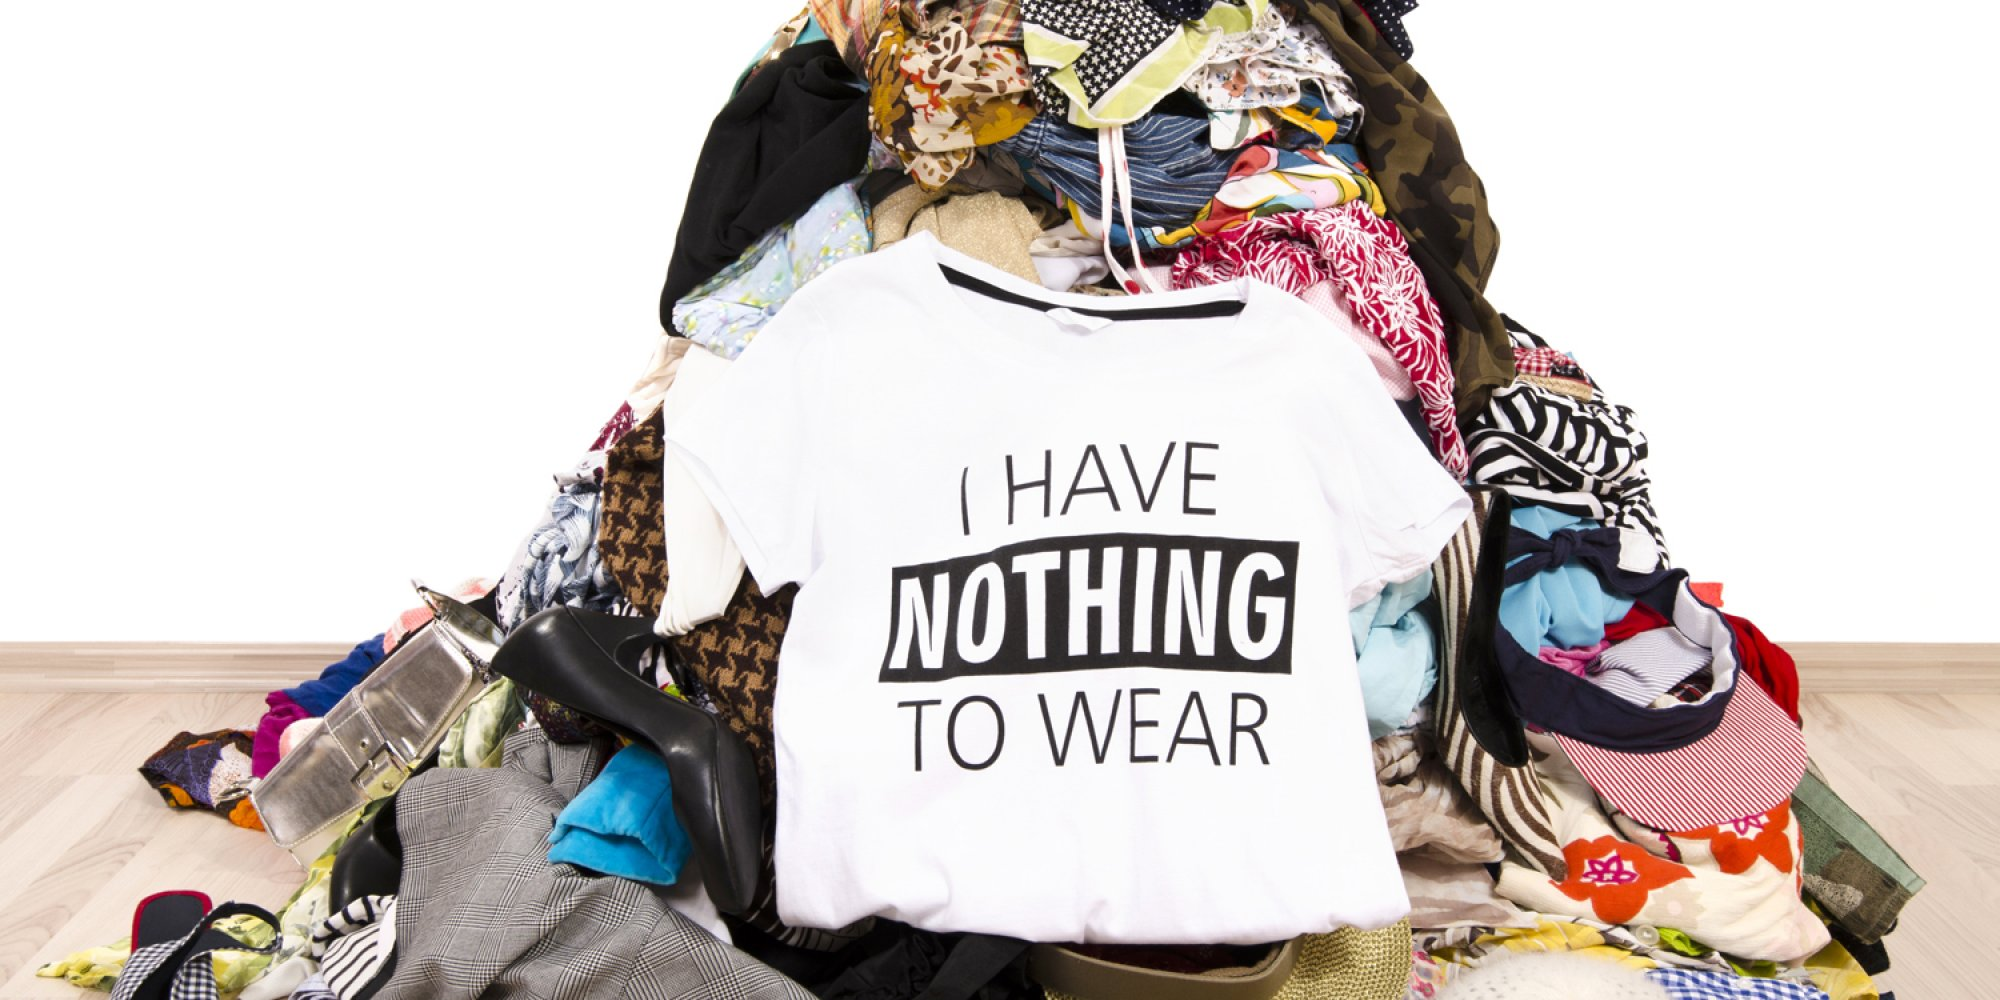 Kis 5 easy moves to declutter your closet before sales-shopping | gallery 0